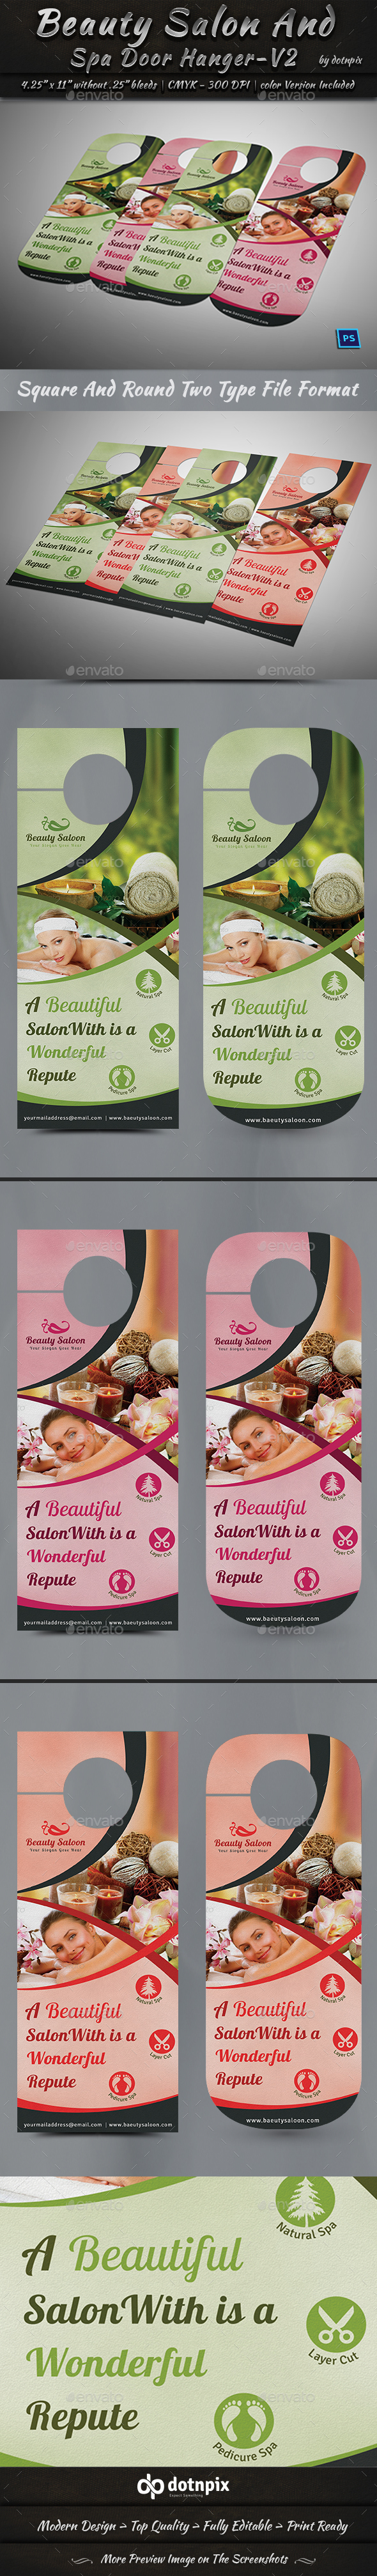 Beauty Salon And Spa Door Hanger_V2 - Miscellaneous Print Templates